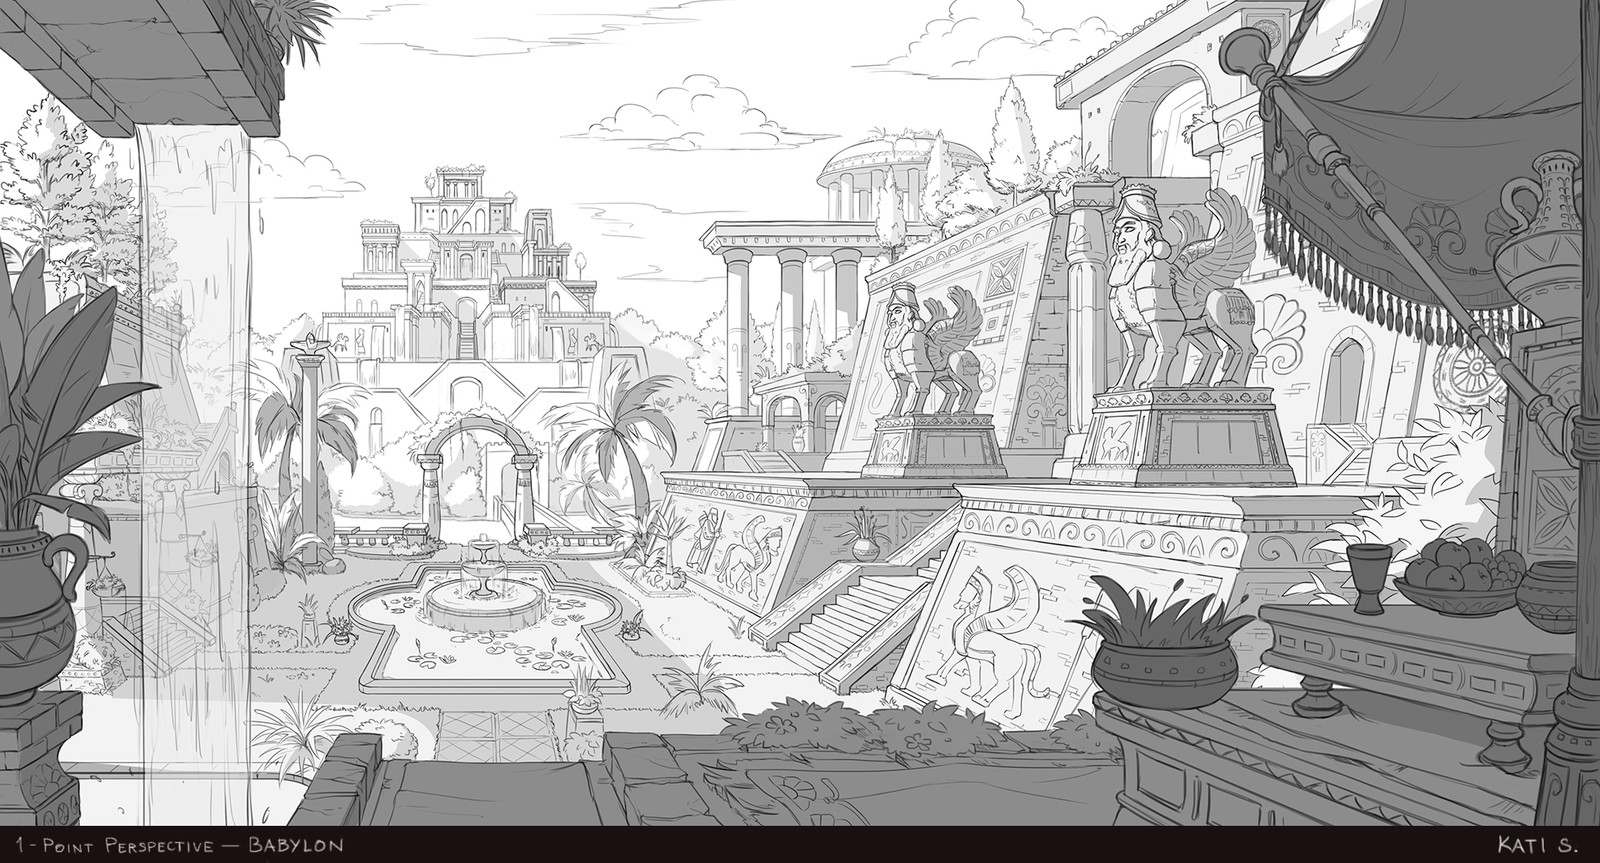 1-point perspective environment of Babylon.